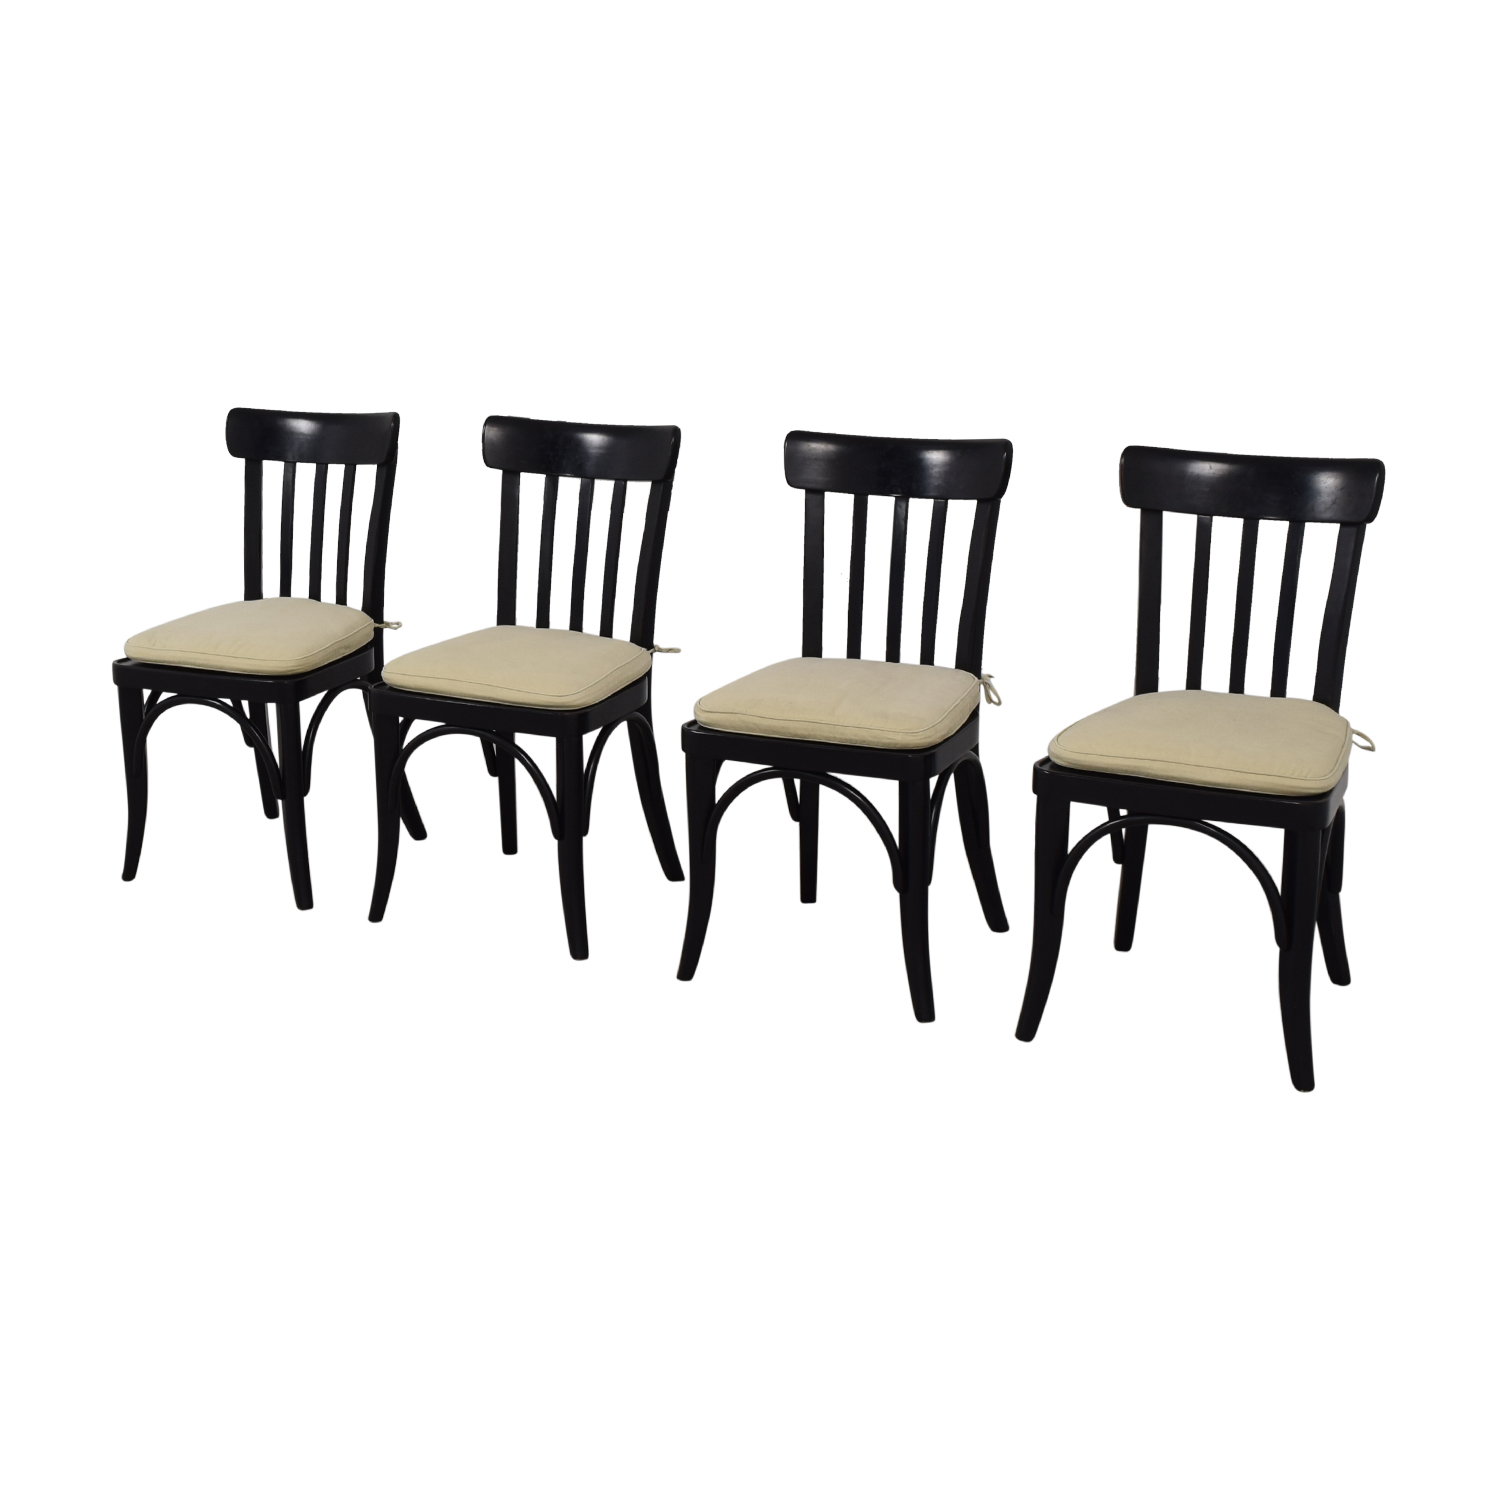 80% OFF   Pottery Barn Pottery Barn Brentwood Dining Chairs / Chairs